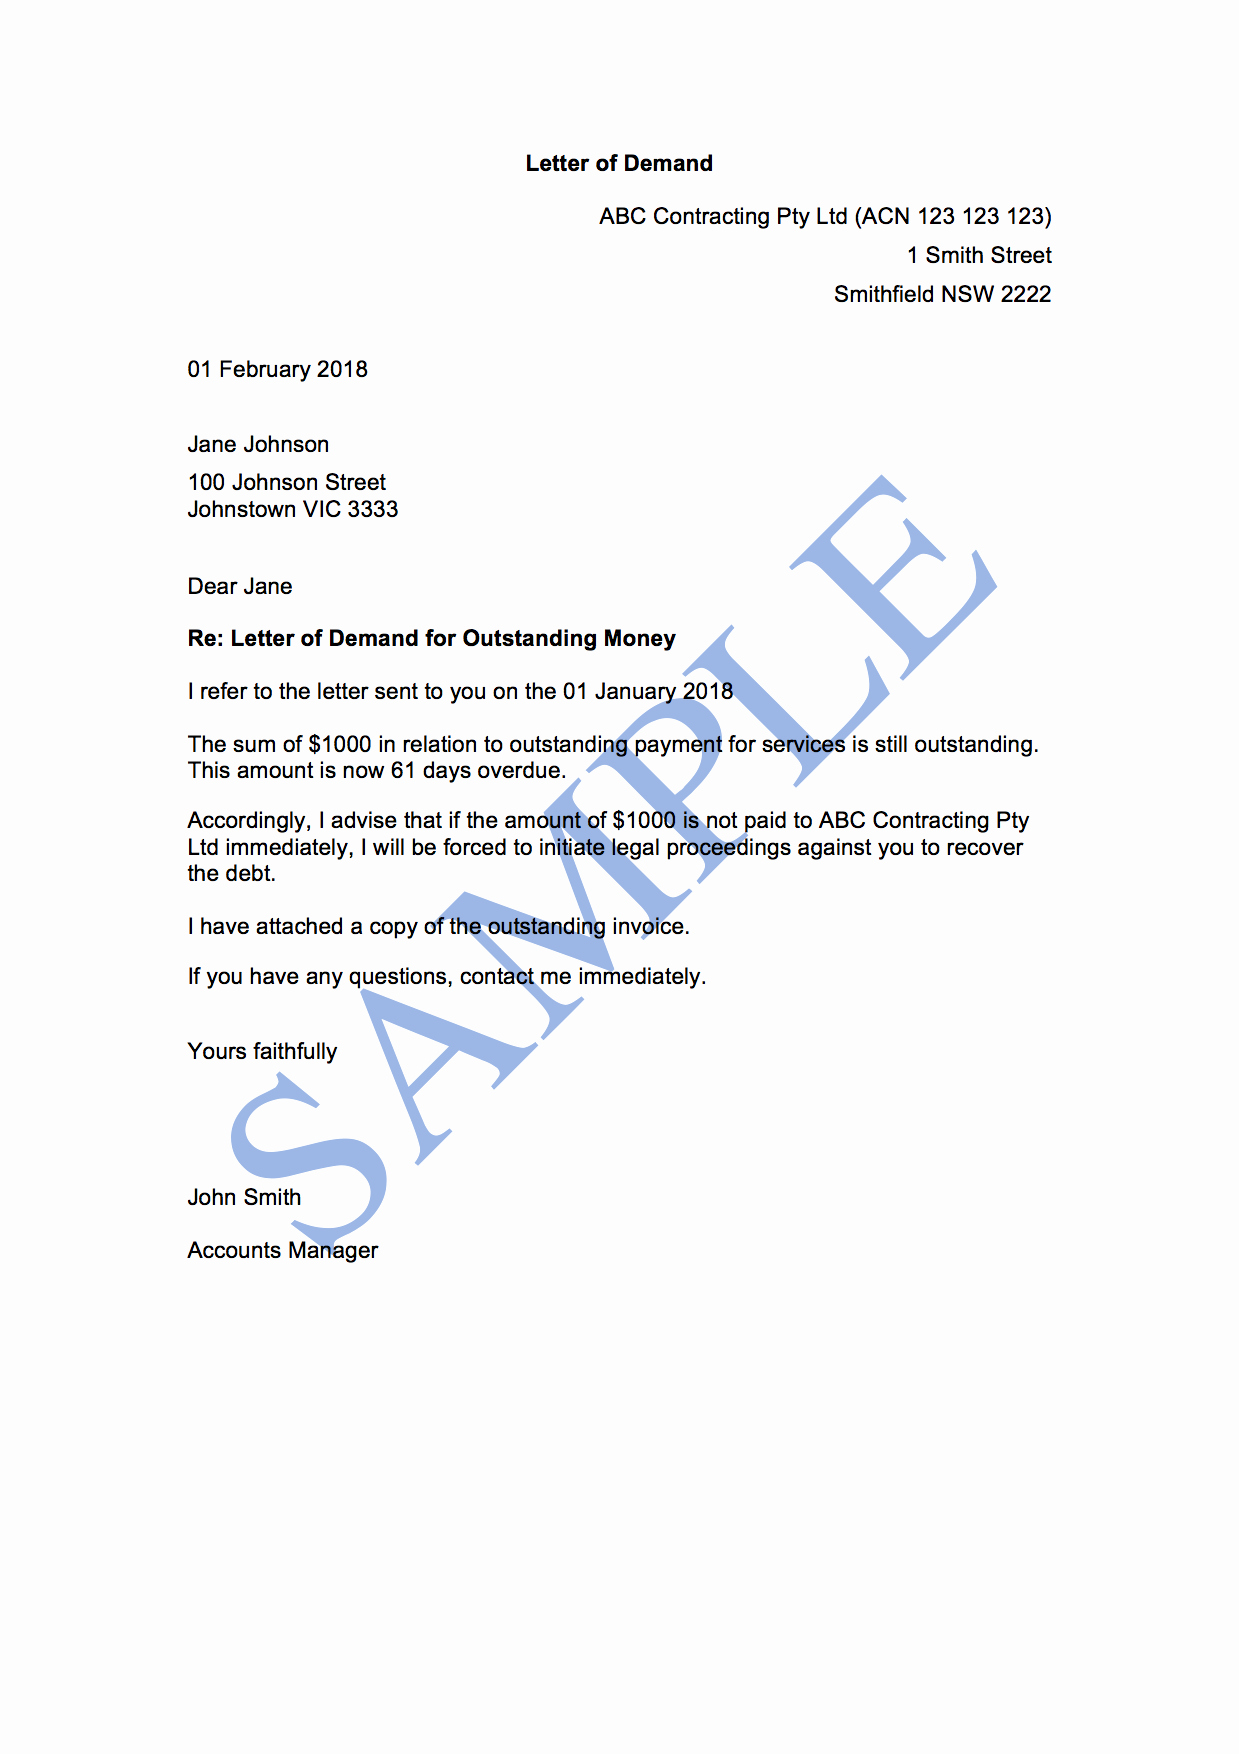 Demand Letter Template Free Elegant Letter Of Demand 2nd attempt Free Template